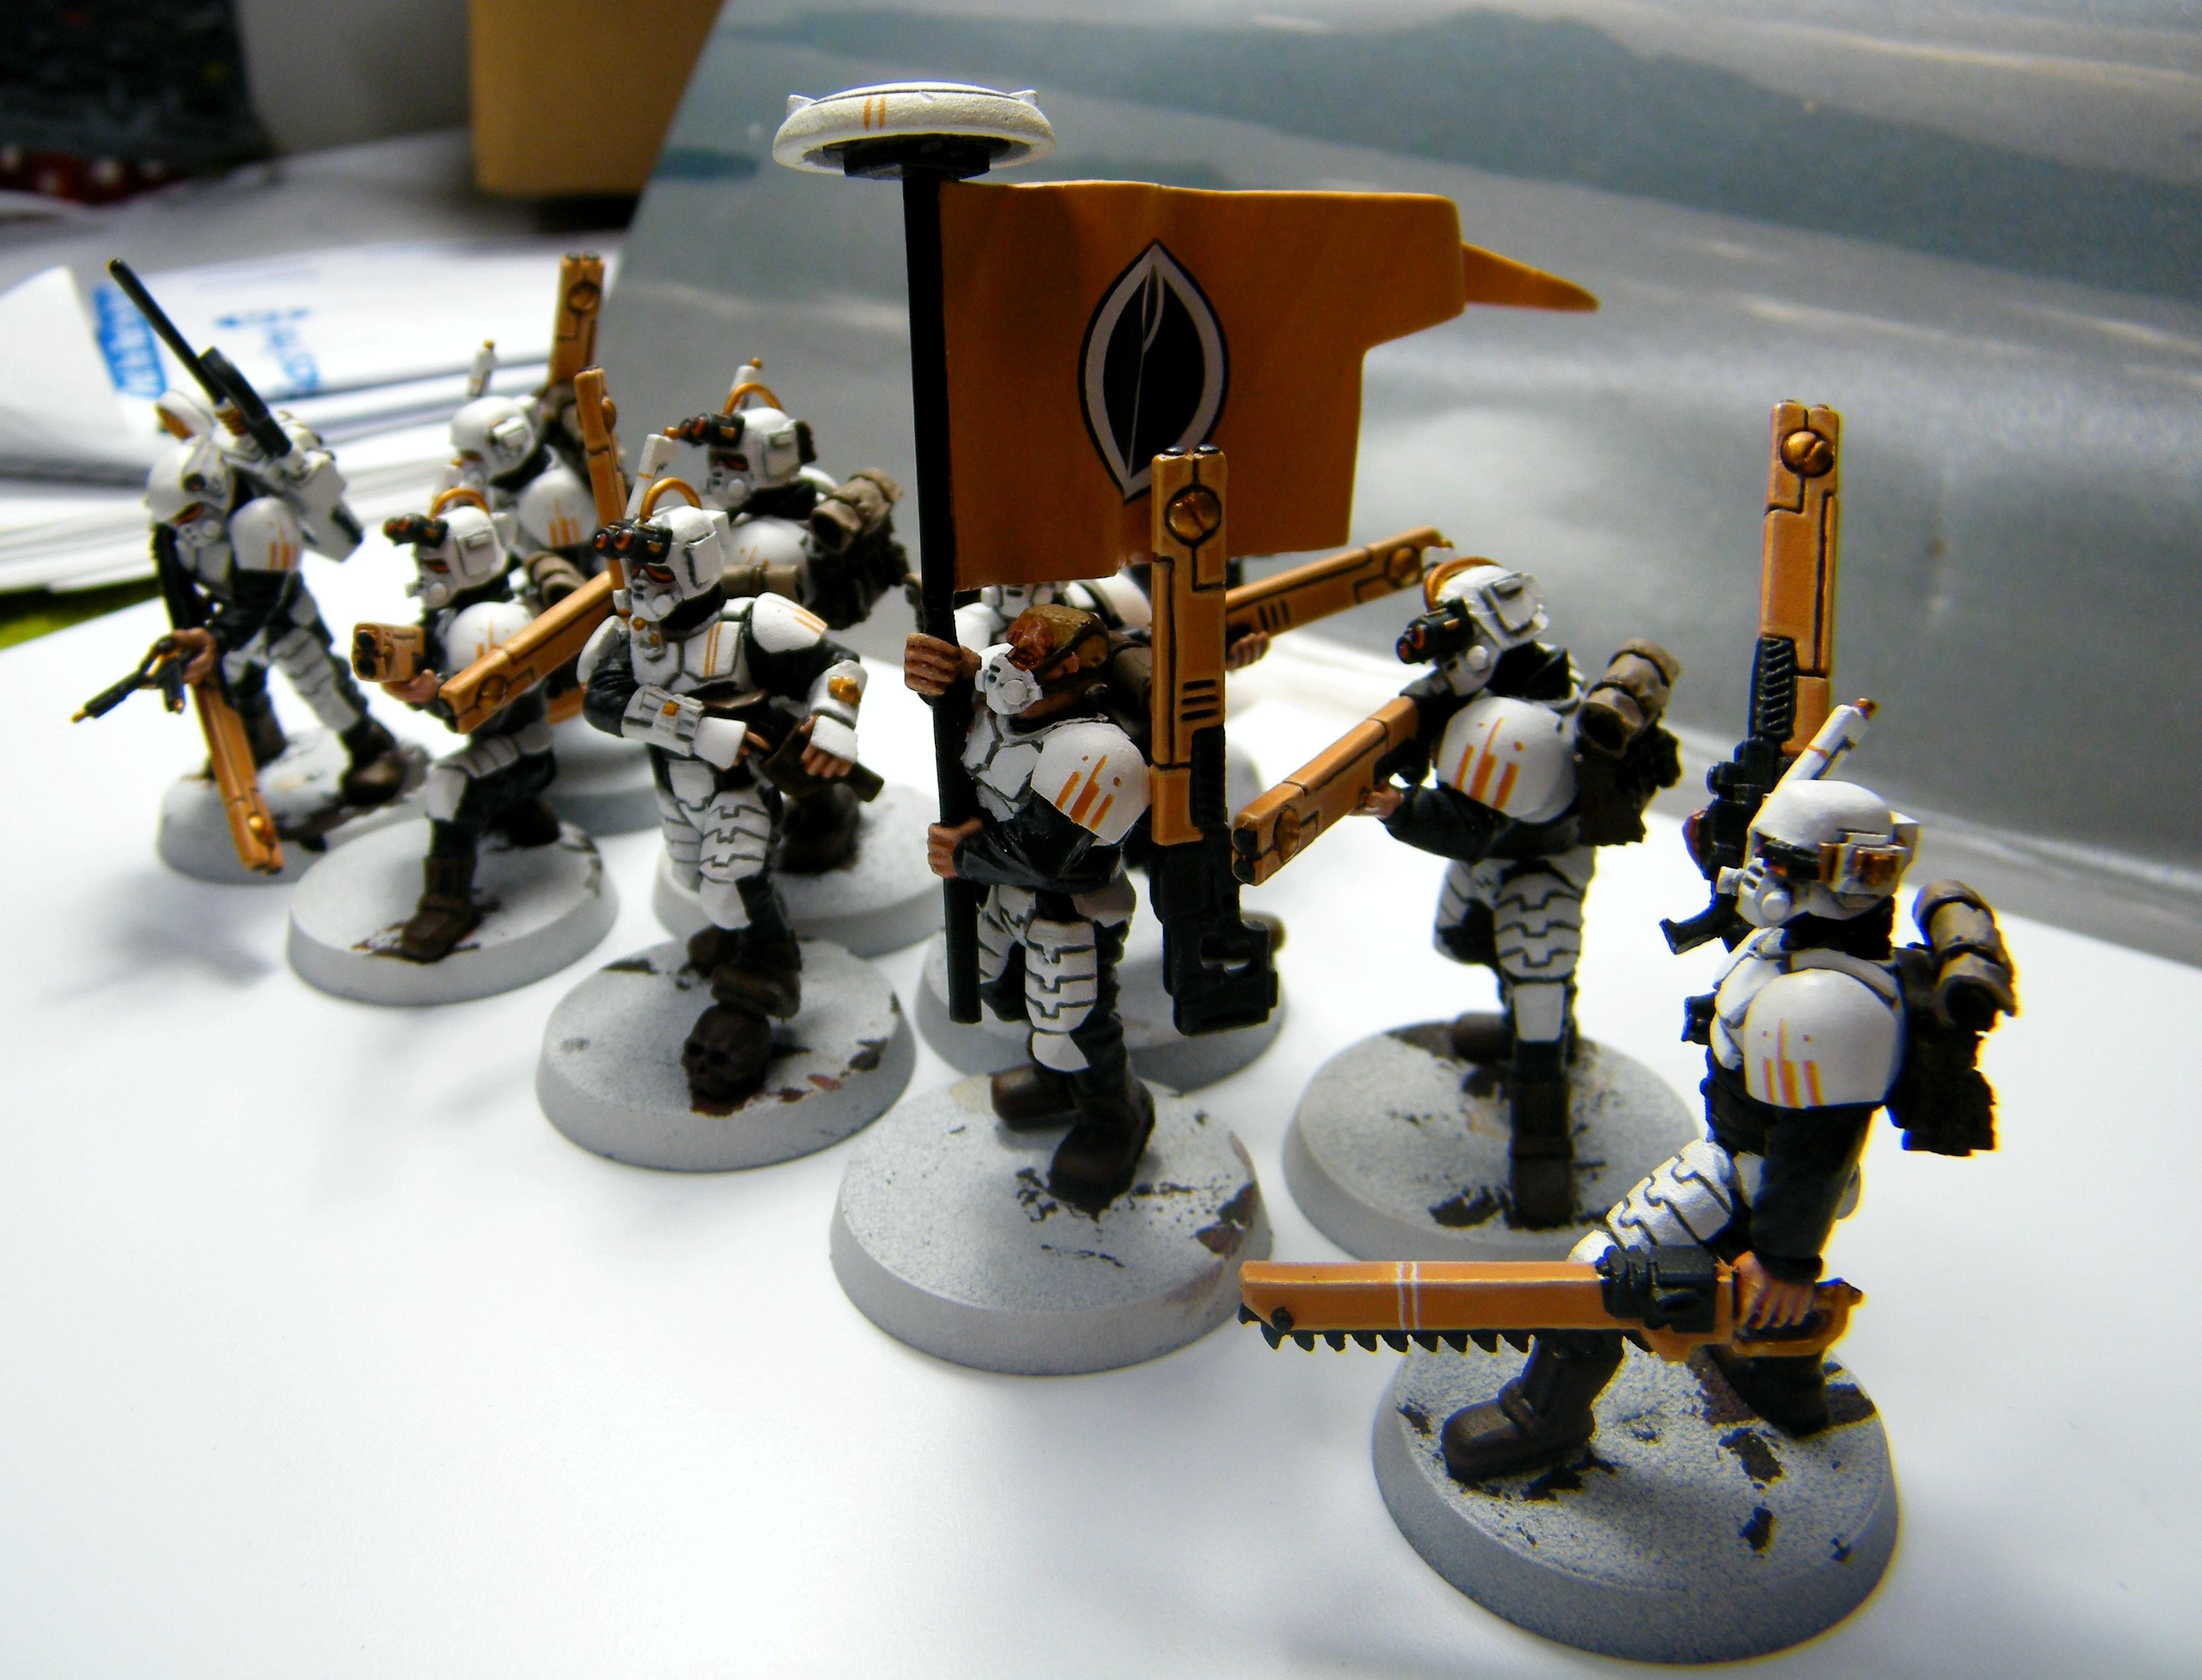 Army, Conversion, Empire, Guevesa, Imeprial Guard, Imperial Guard Conscrips, Kitbash, Tau, Warhammer 40,000